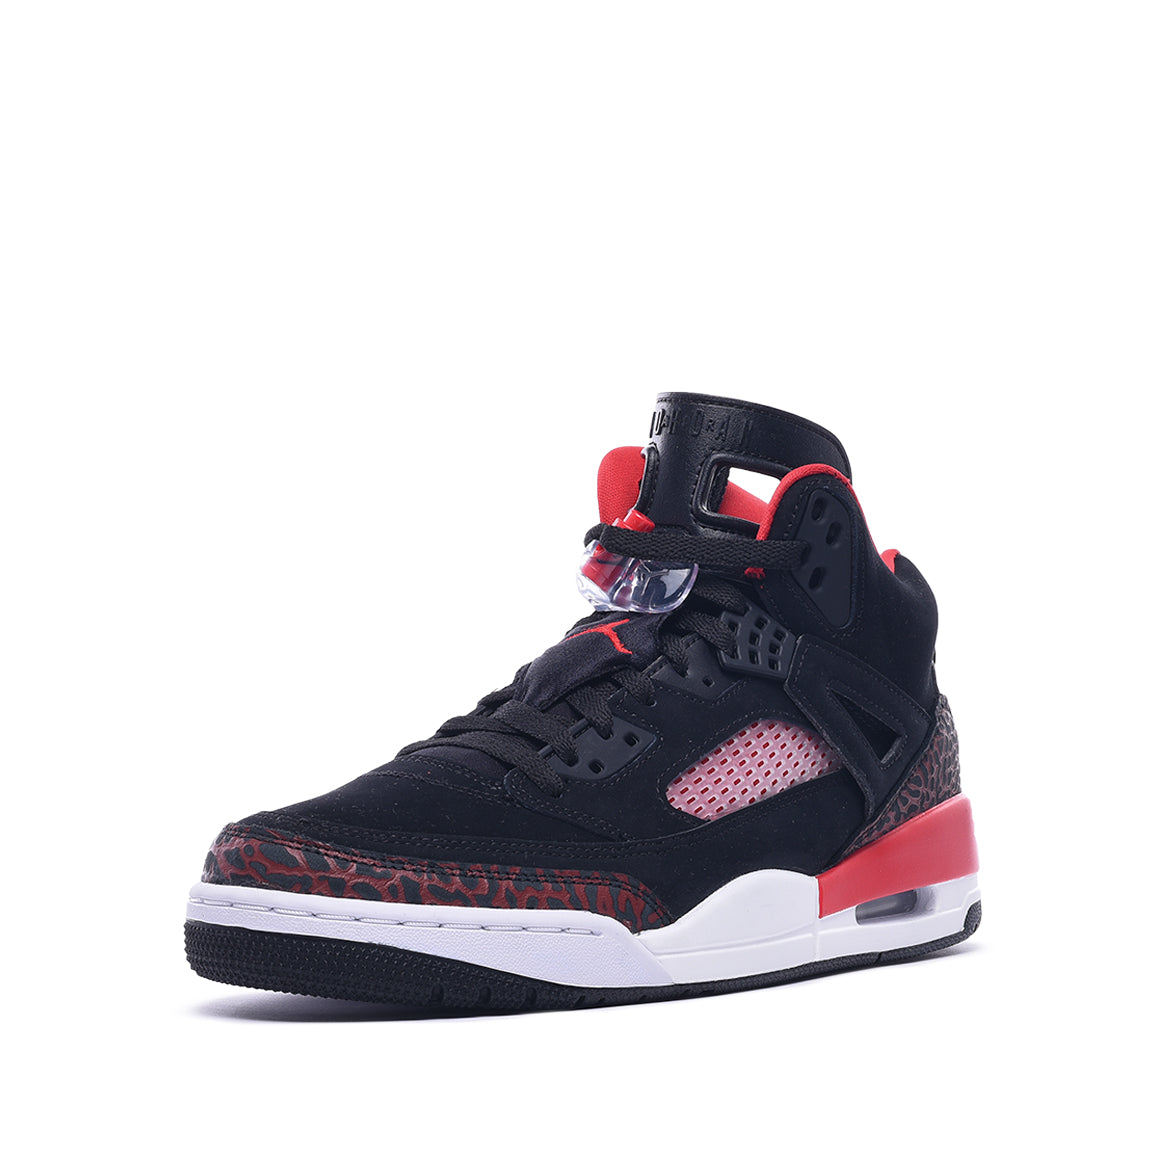 JORDAN SPIZIKE - BLACK / UNIVERSITY RED / WHITE